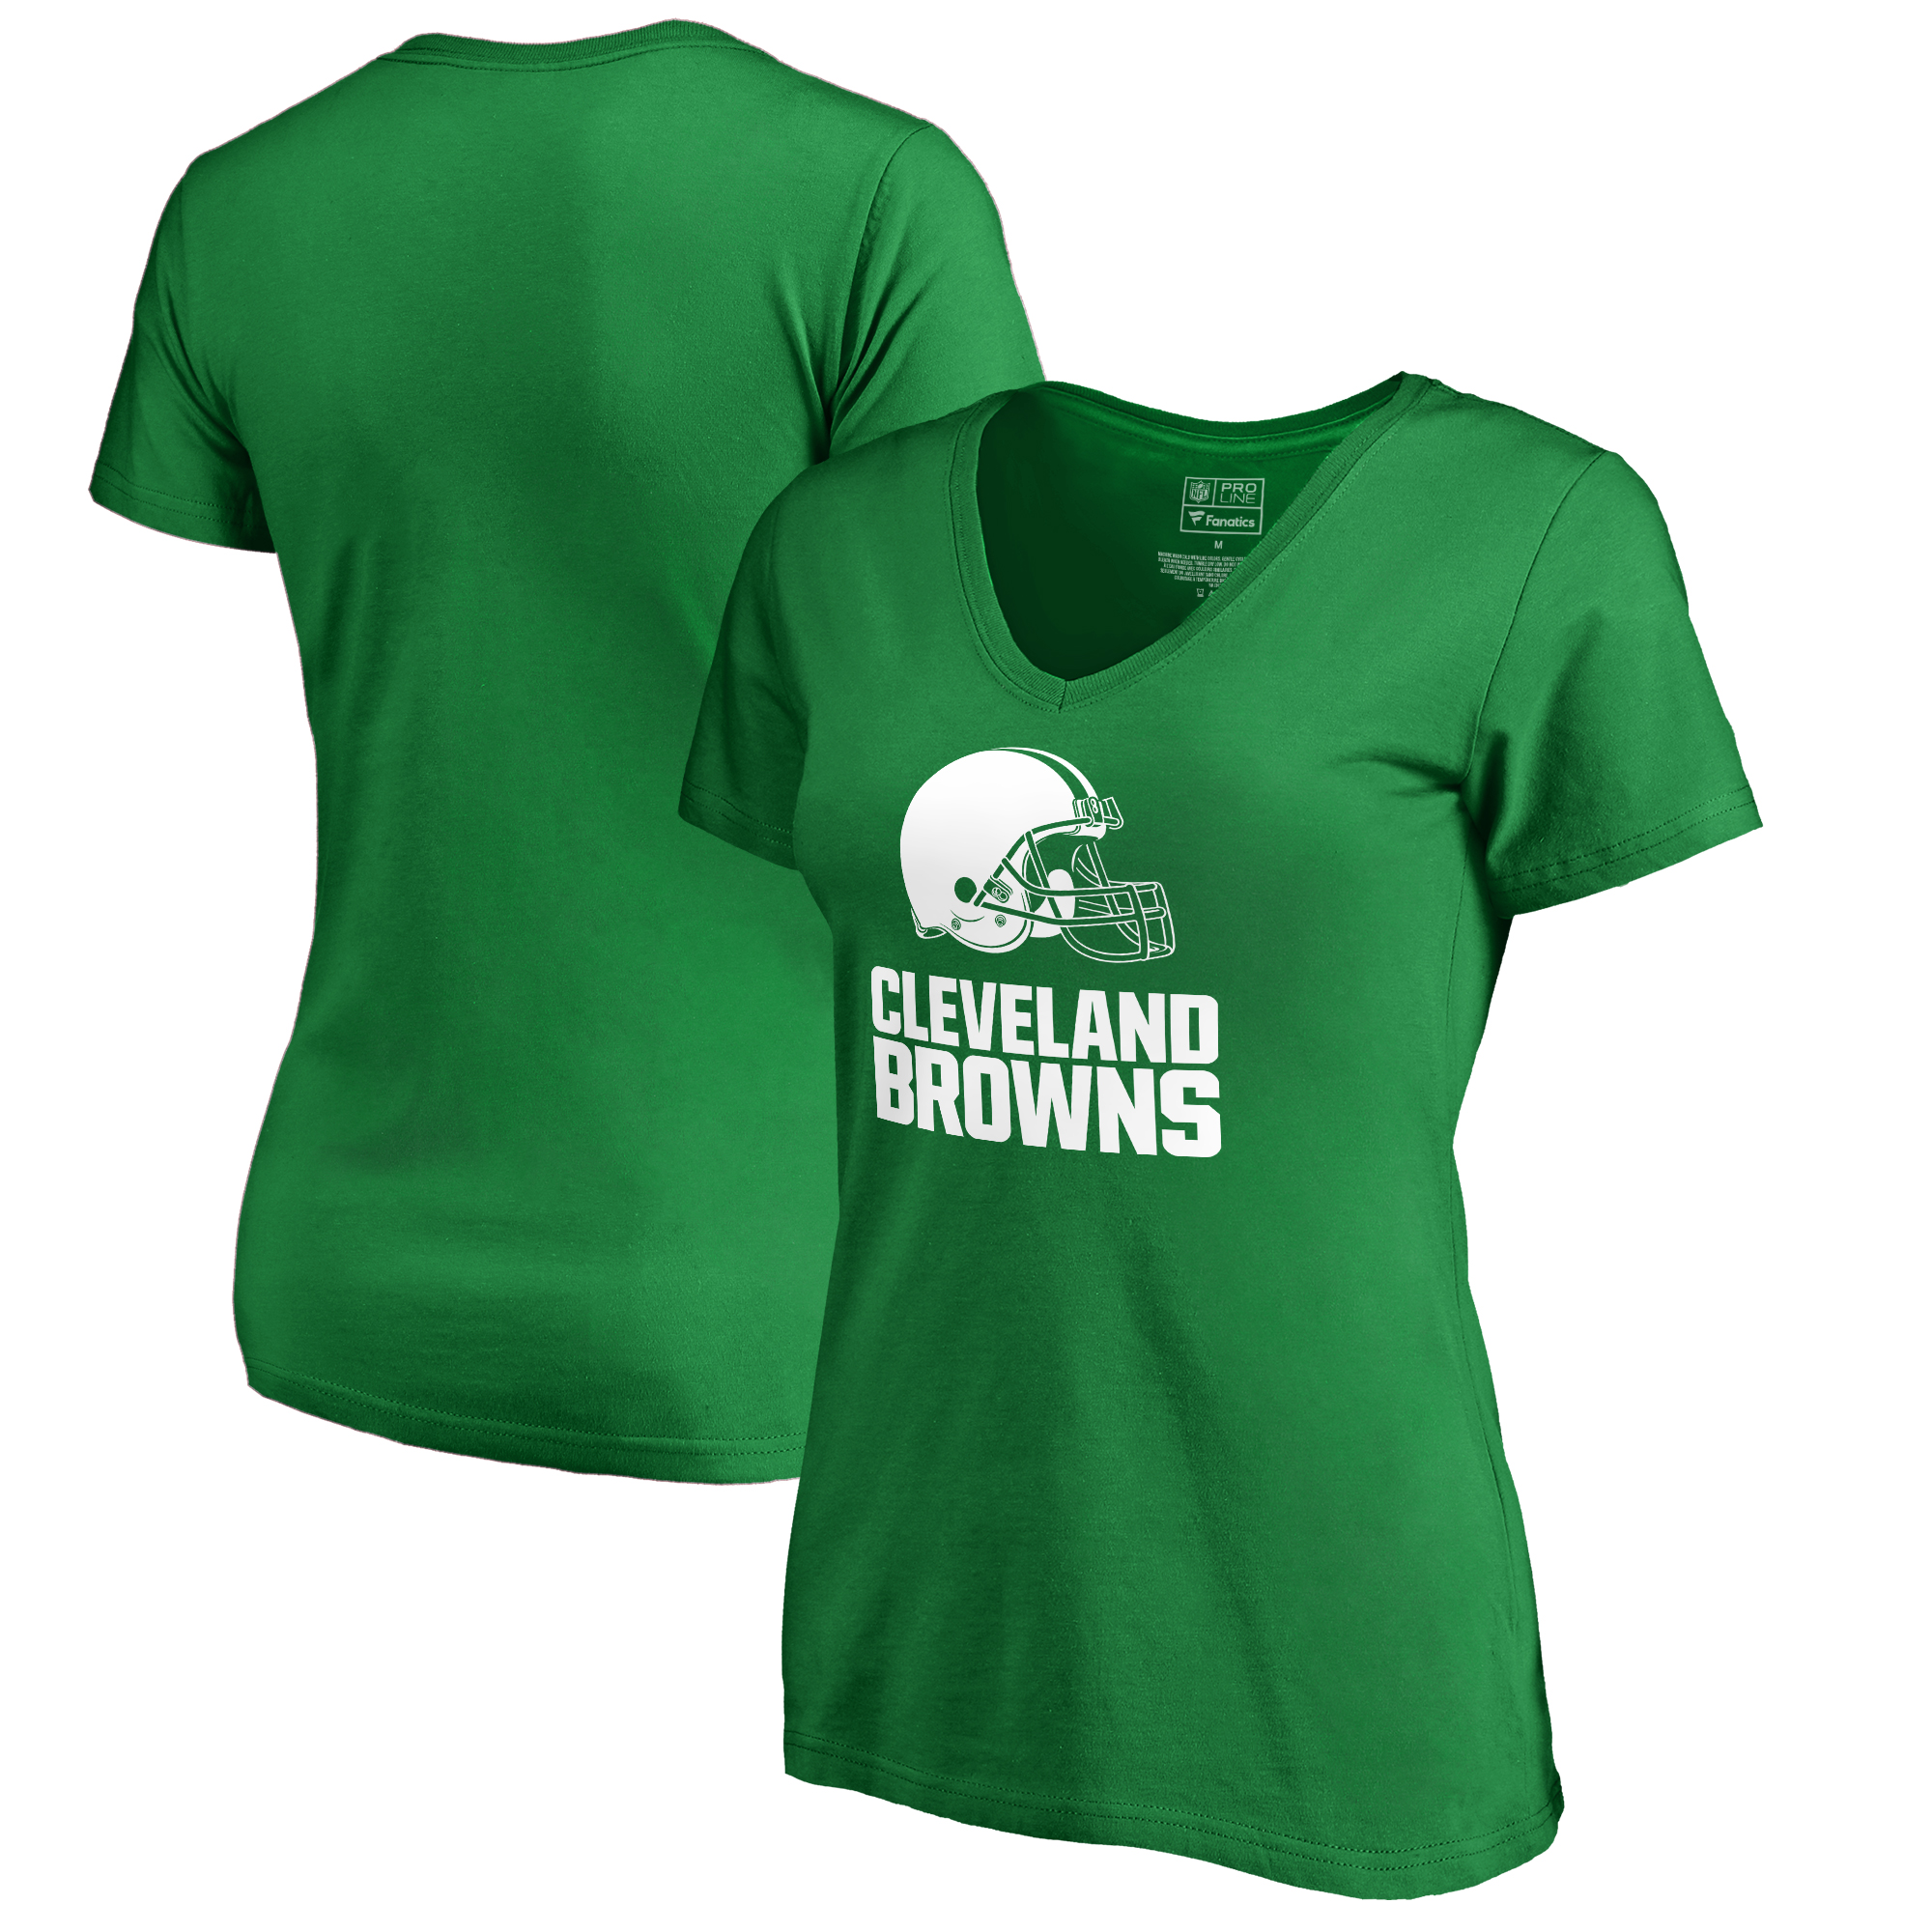 Cleveland Browns NFL Pro Line by Fanatics Branded Women's St. Patrick's Day White Logo T-Shirt - Kelly Green